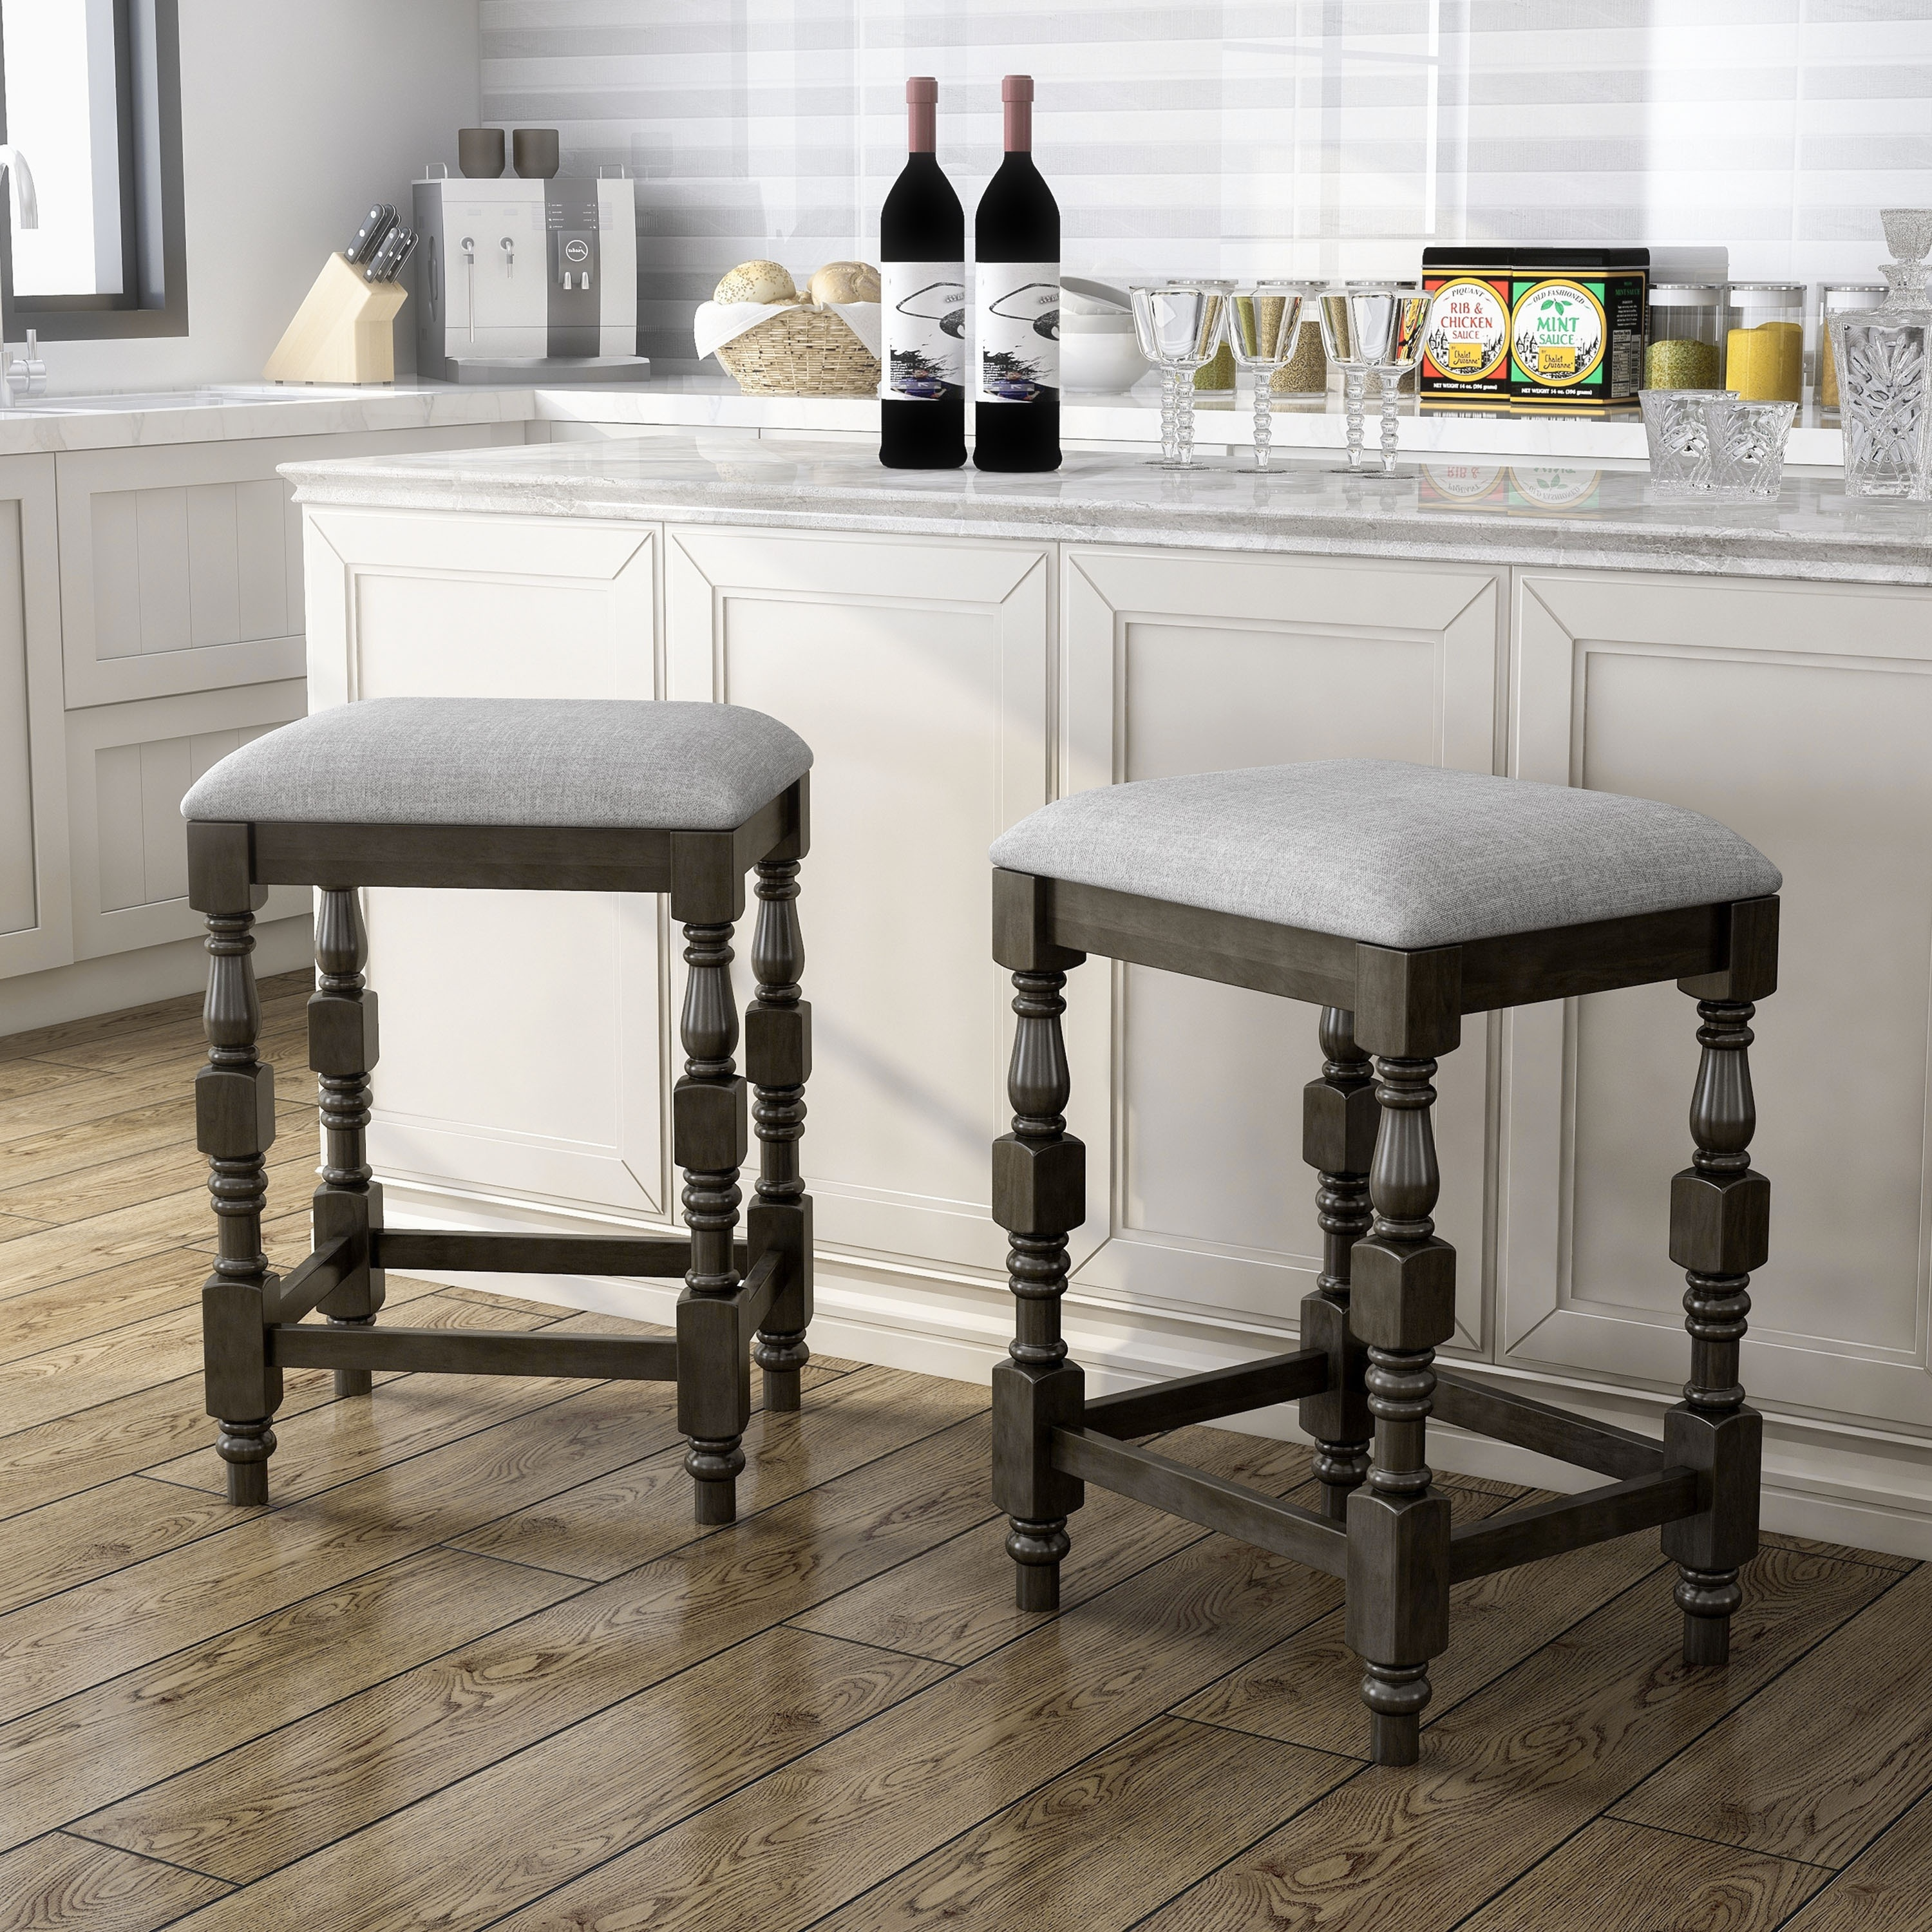 Picture of: Furniture Of America Adagio Farmhouse Counter Height Stool Set Of 2 On Sale Overstock 31273386